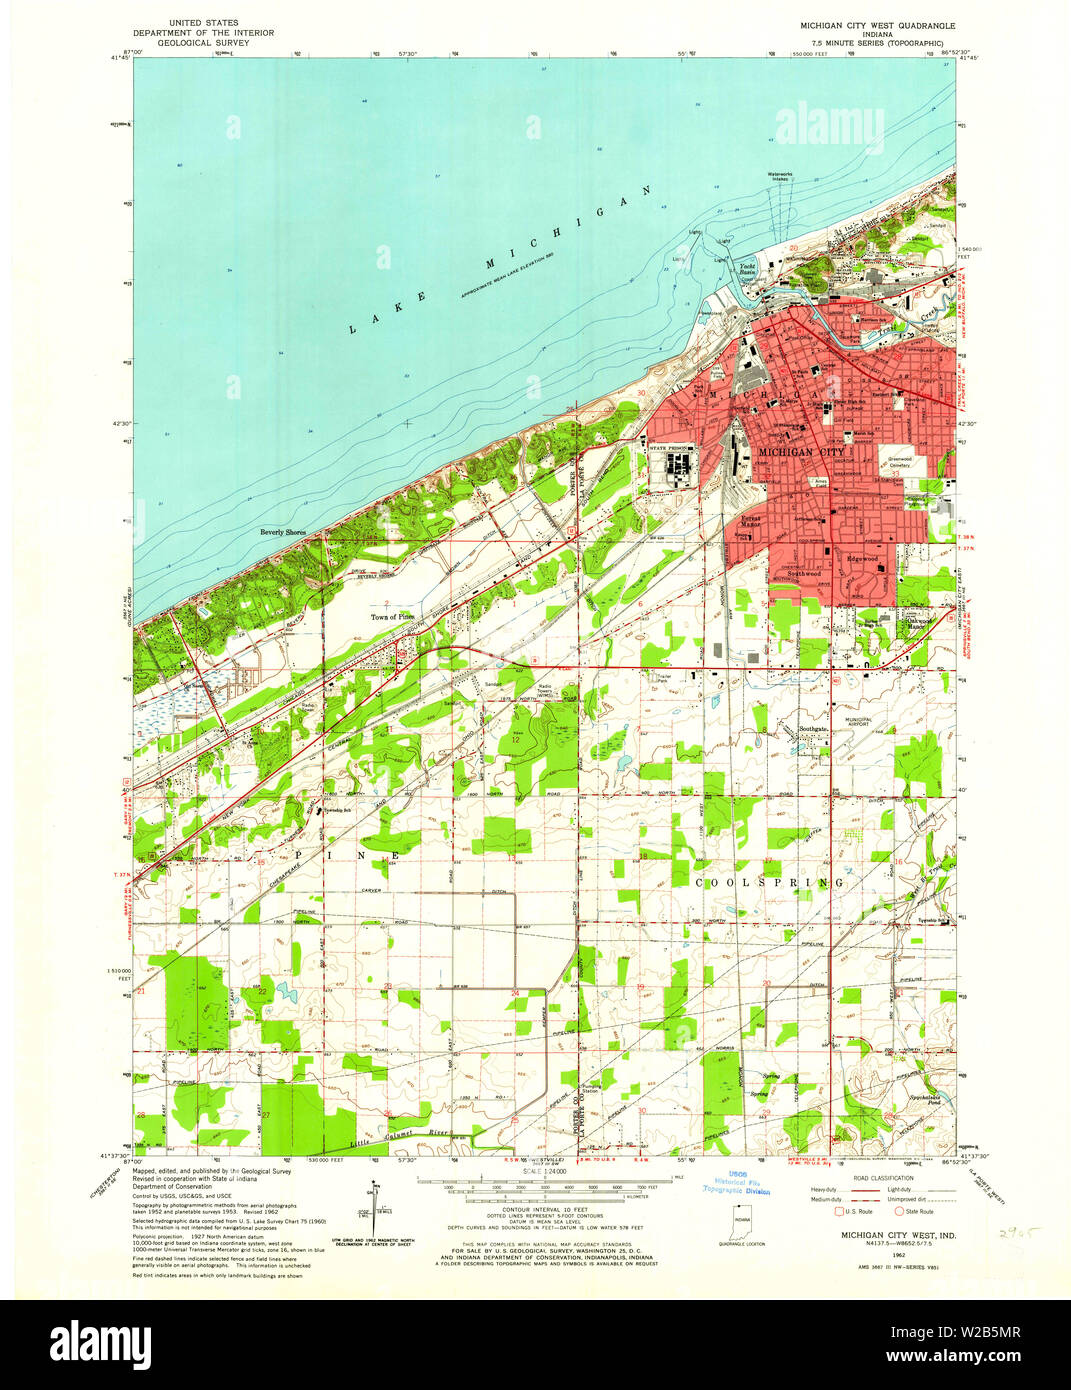 Usgs Topo Map Indiana In Michigan City West 160676 1962